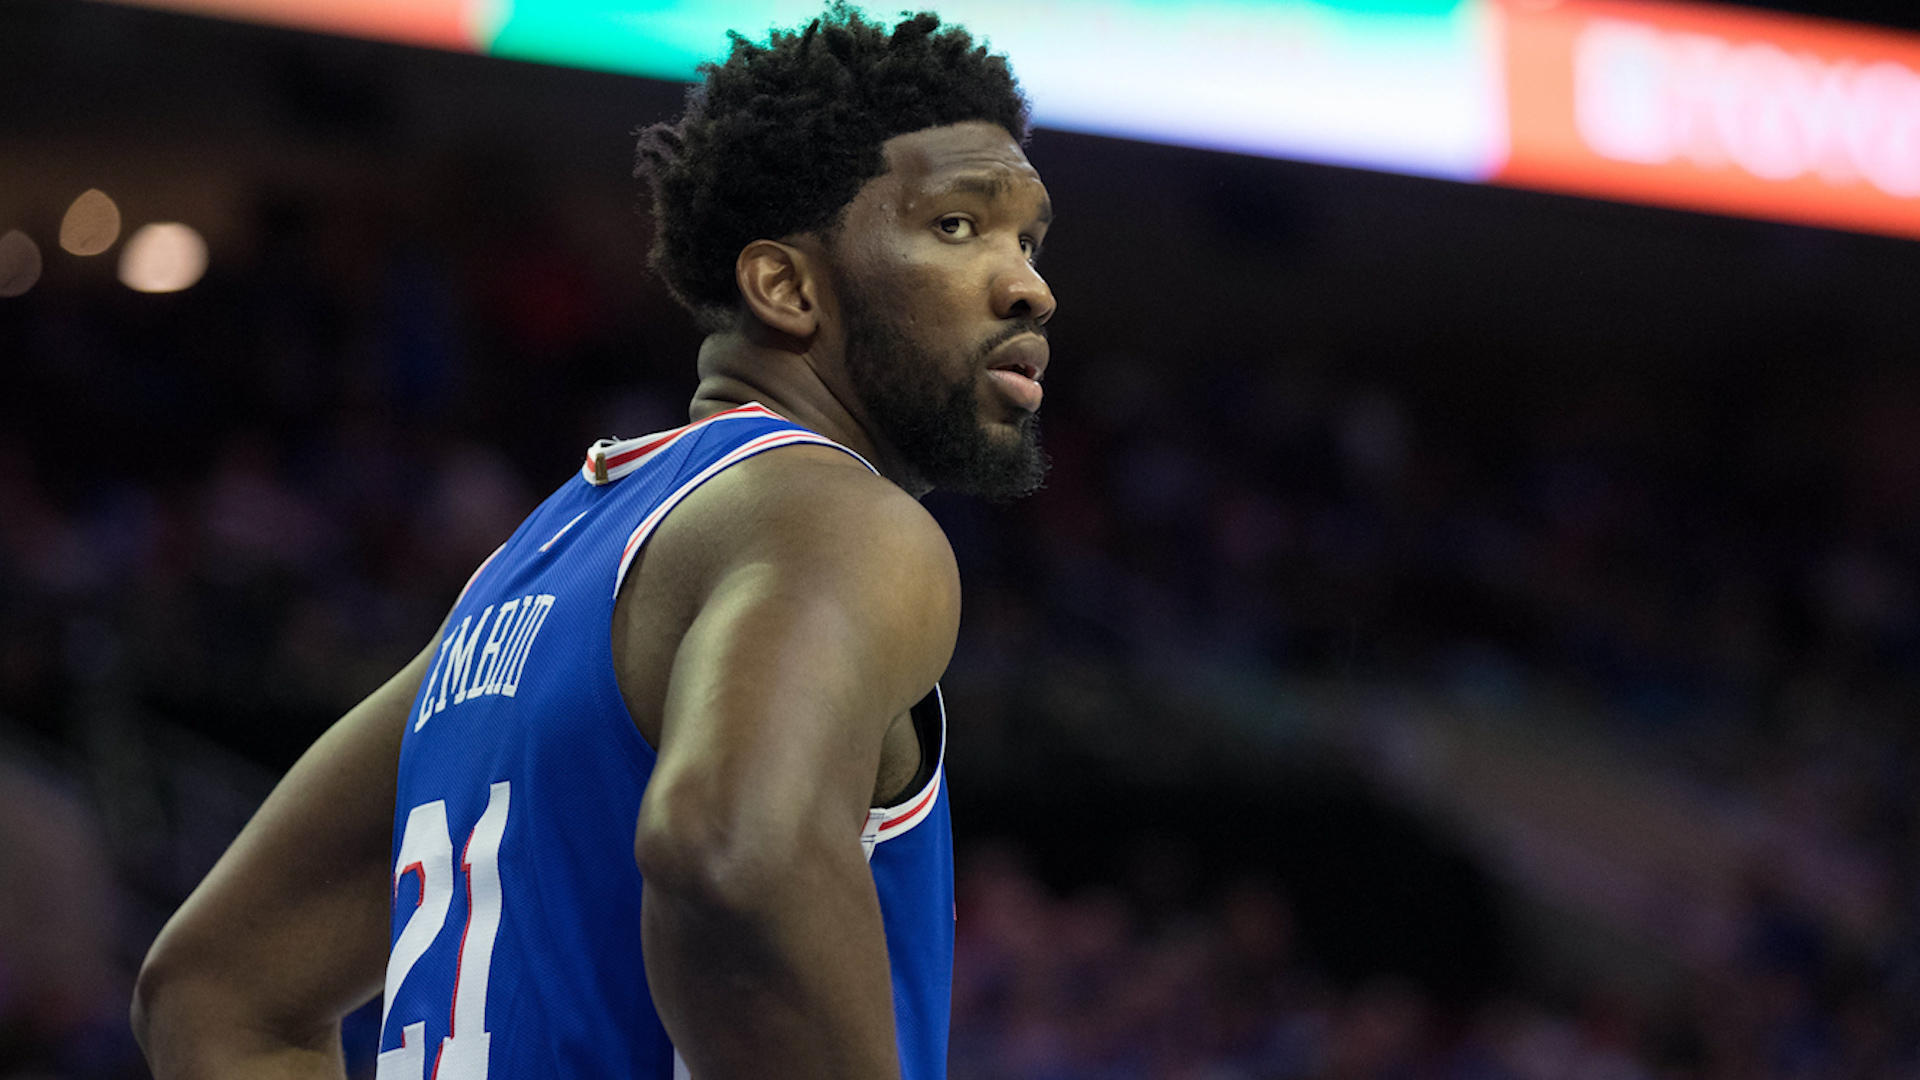 NBA Playoffs 2019: Sixers vs. Nets odds, picks, Game 3 predictions from proven model on 77-62 roll